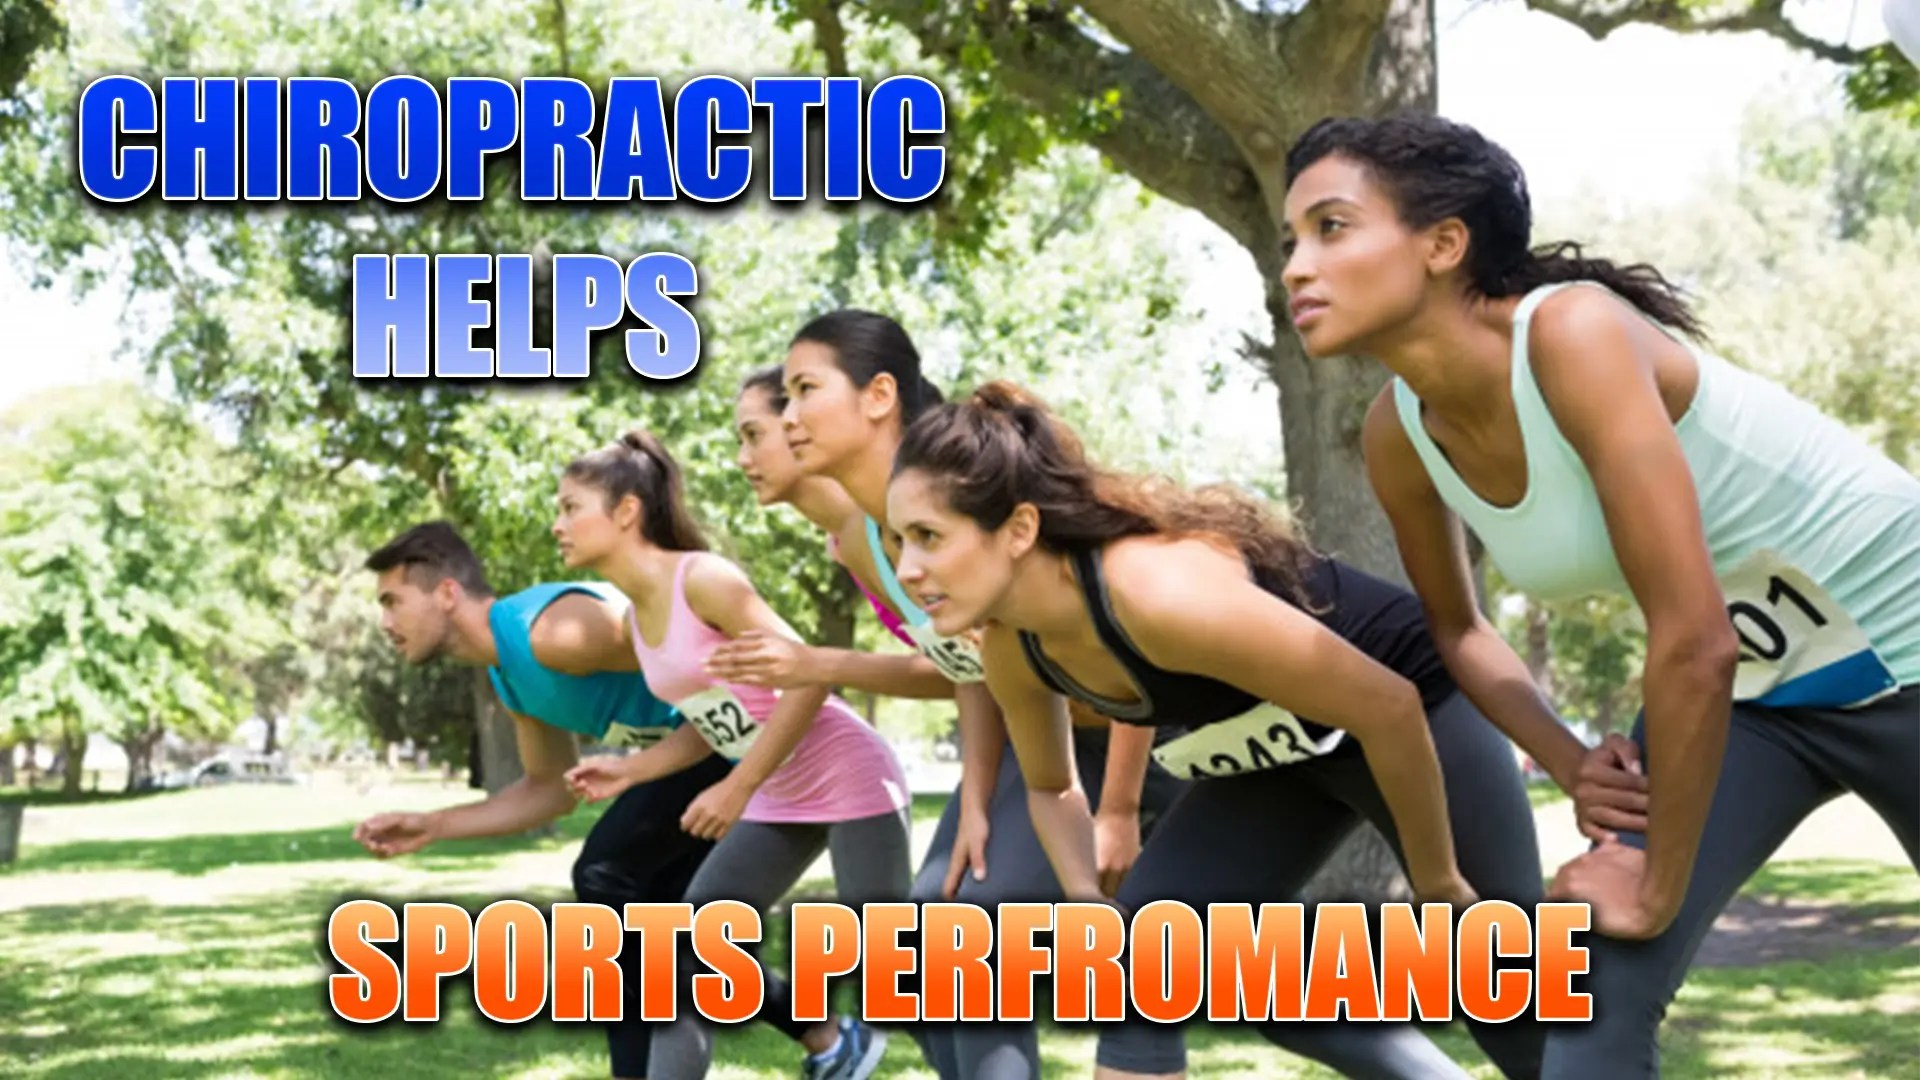 Sports Performance, Chiropractic Helps! In El Paso, TX.